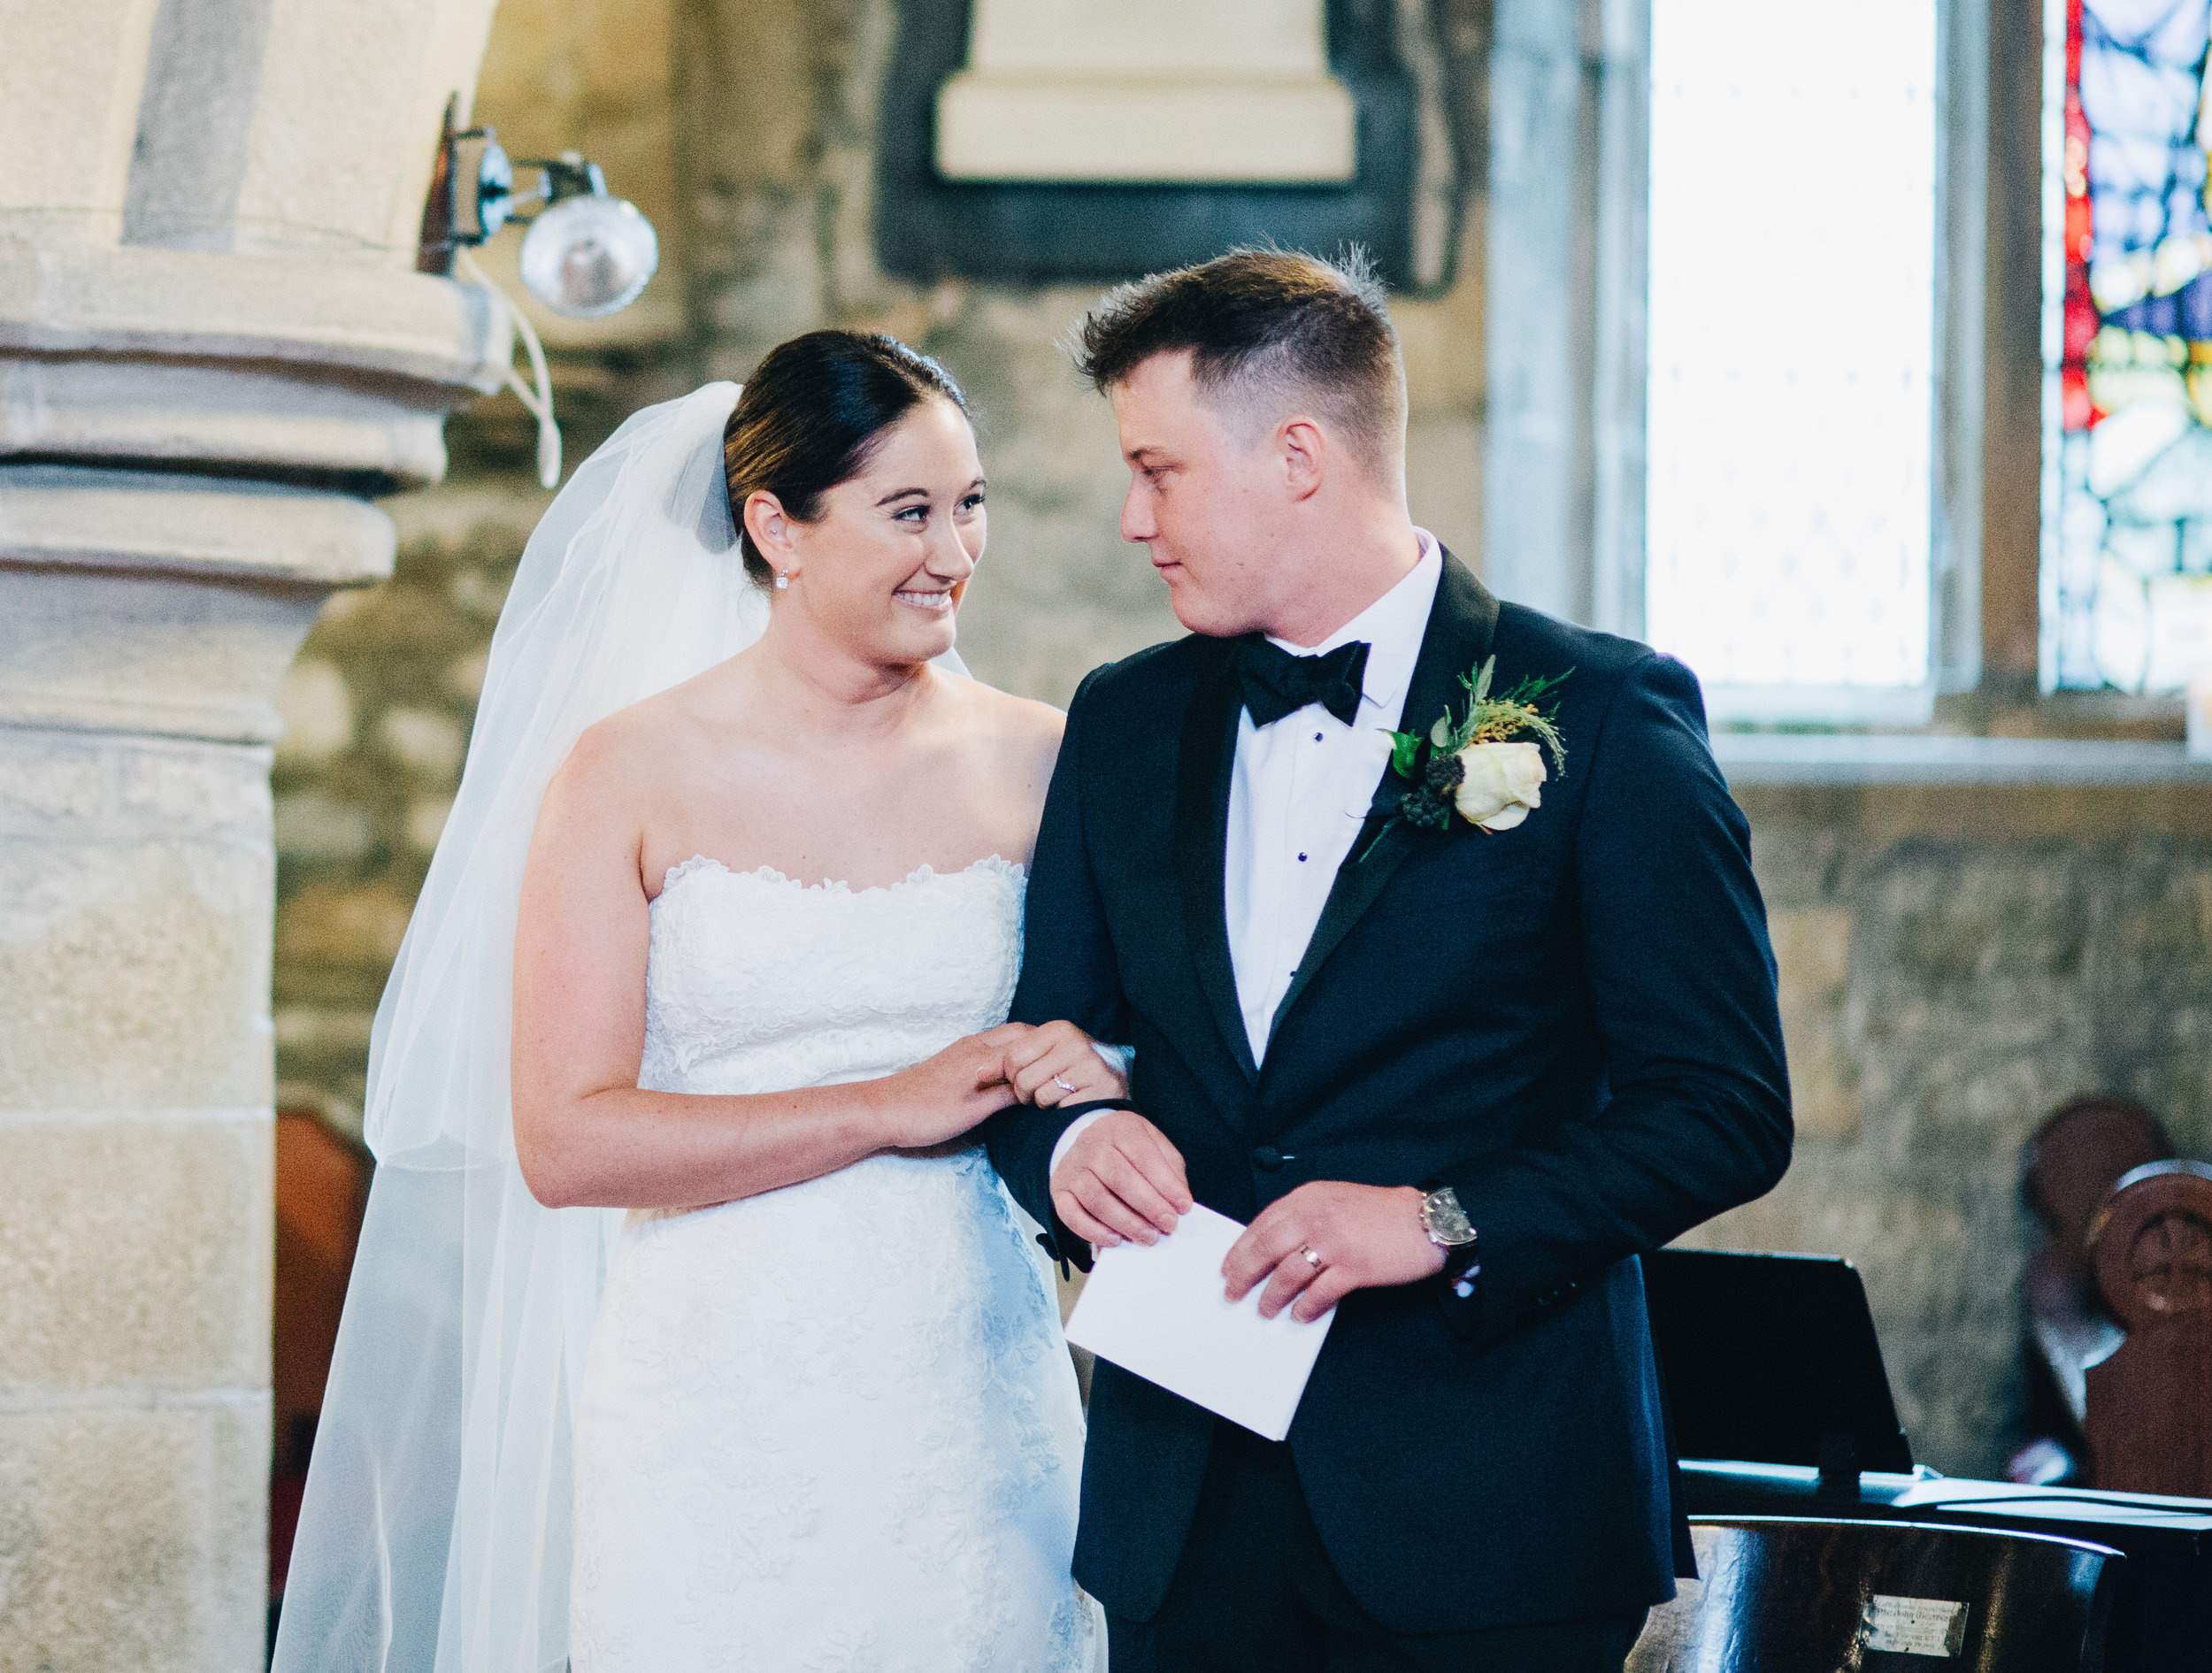 emotional wedding pictures - wedding ceremony Lancashire